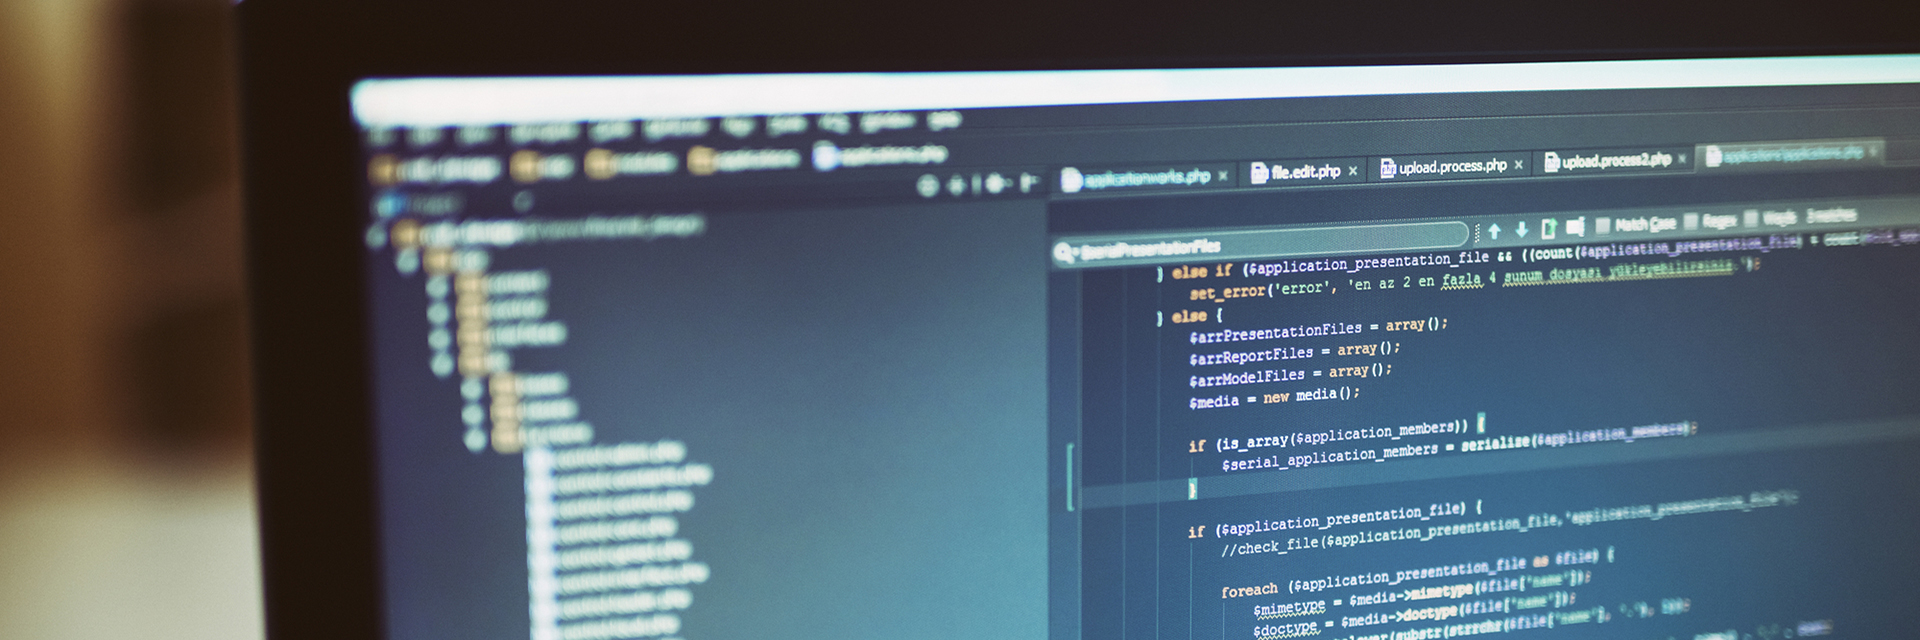 Close up of Monitor with HTML code on it